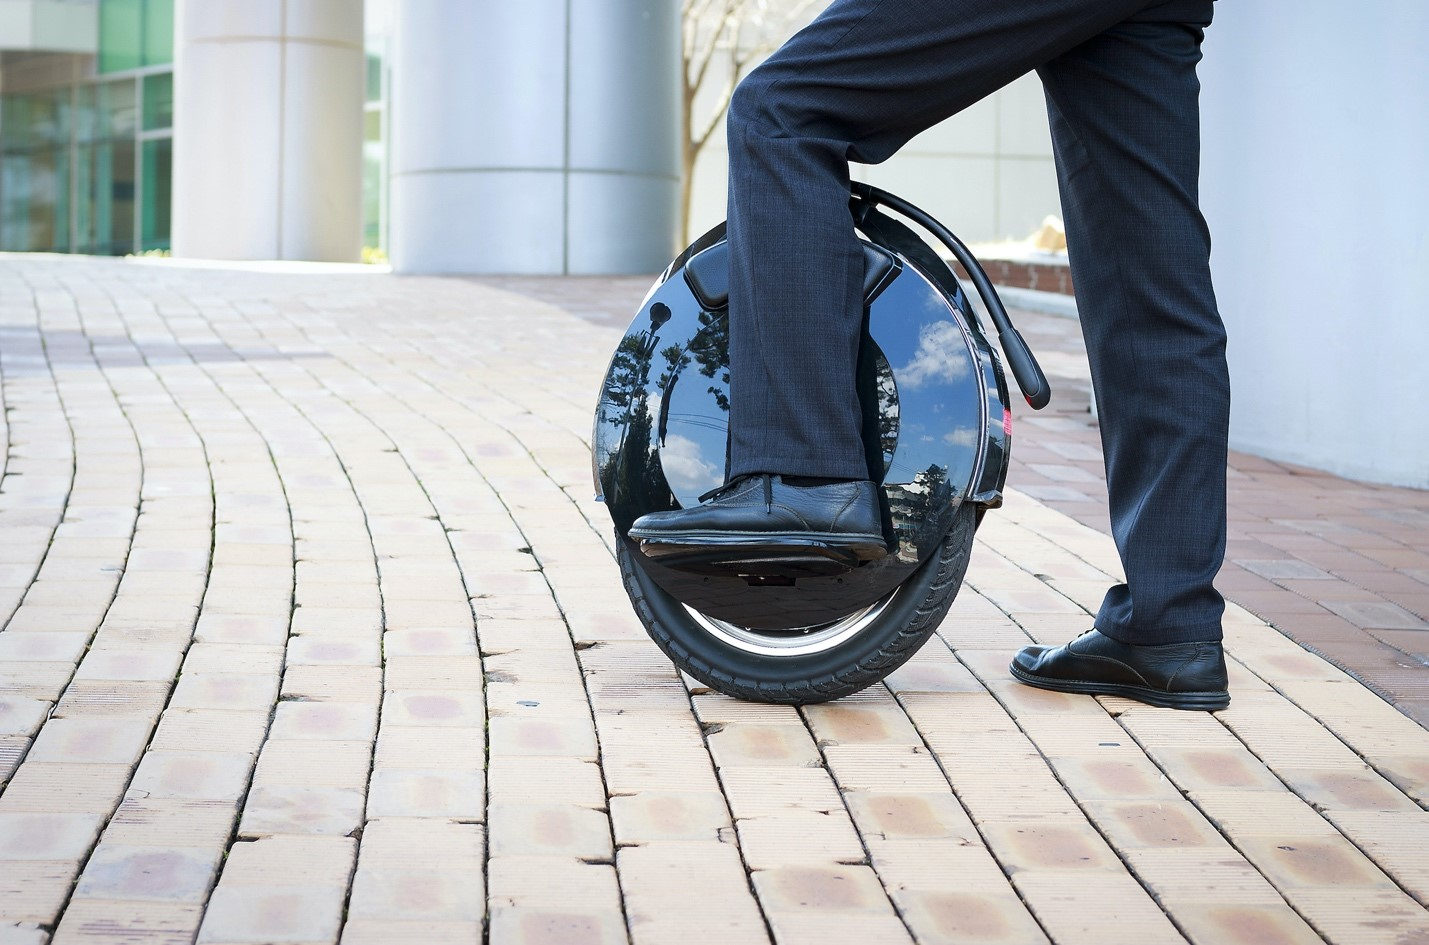 Electric unicycles - the future of last-mile transportation? - Alvinology